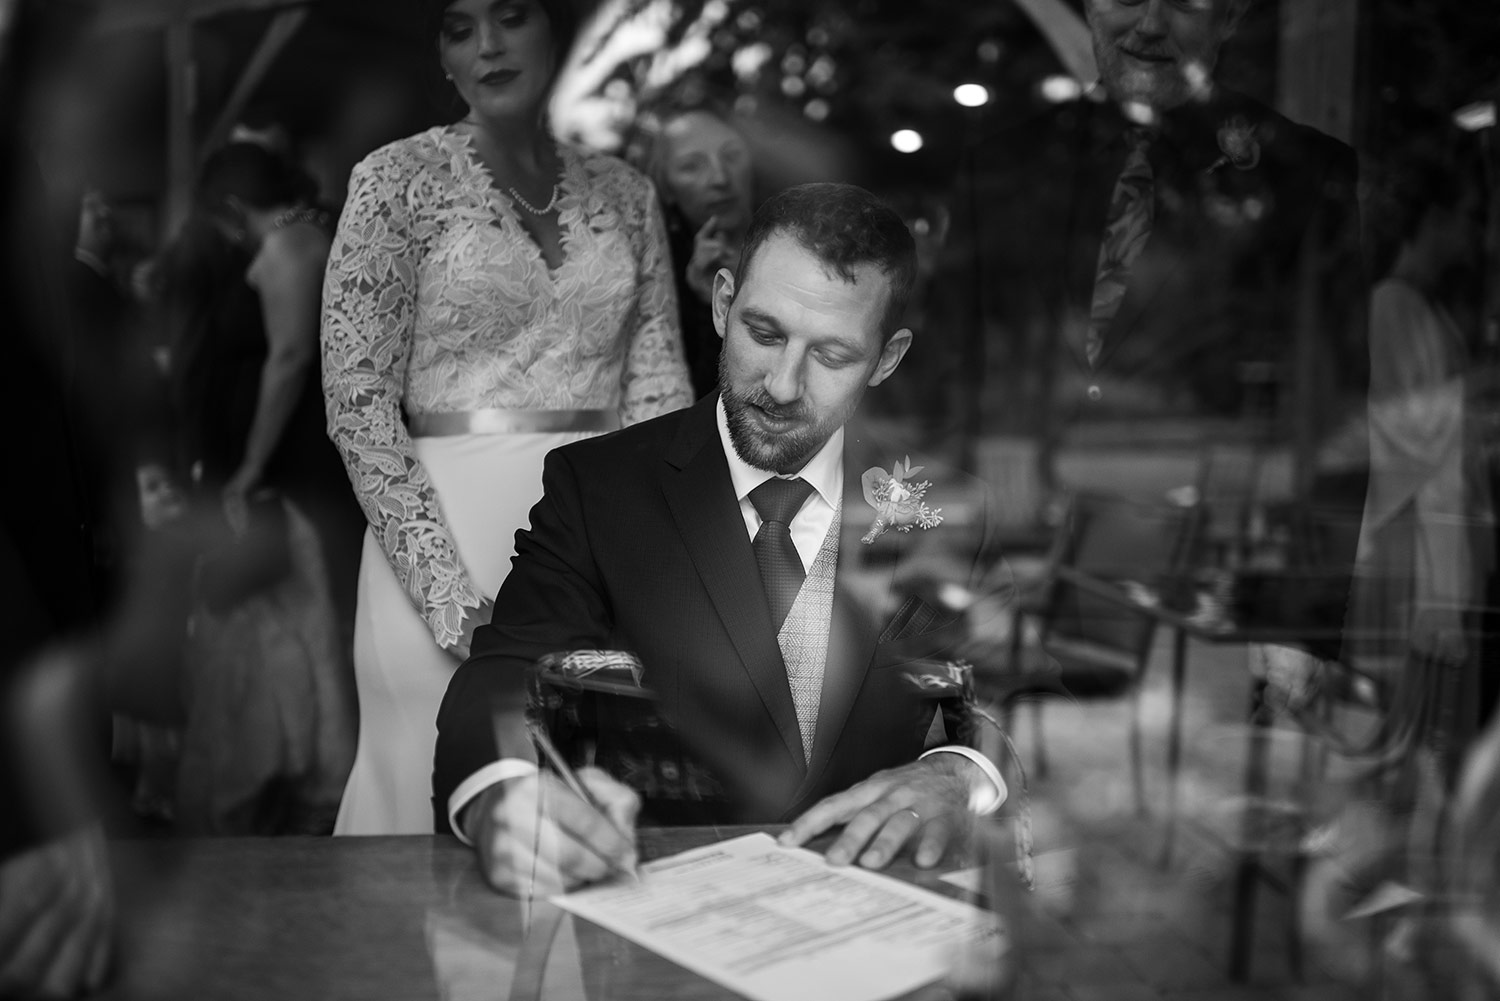 Groom signing the marriage certificate at a Whidbey Island wedding